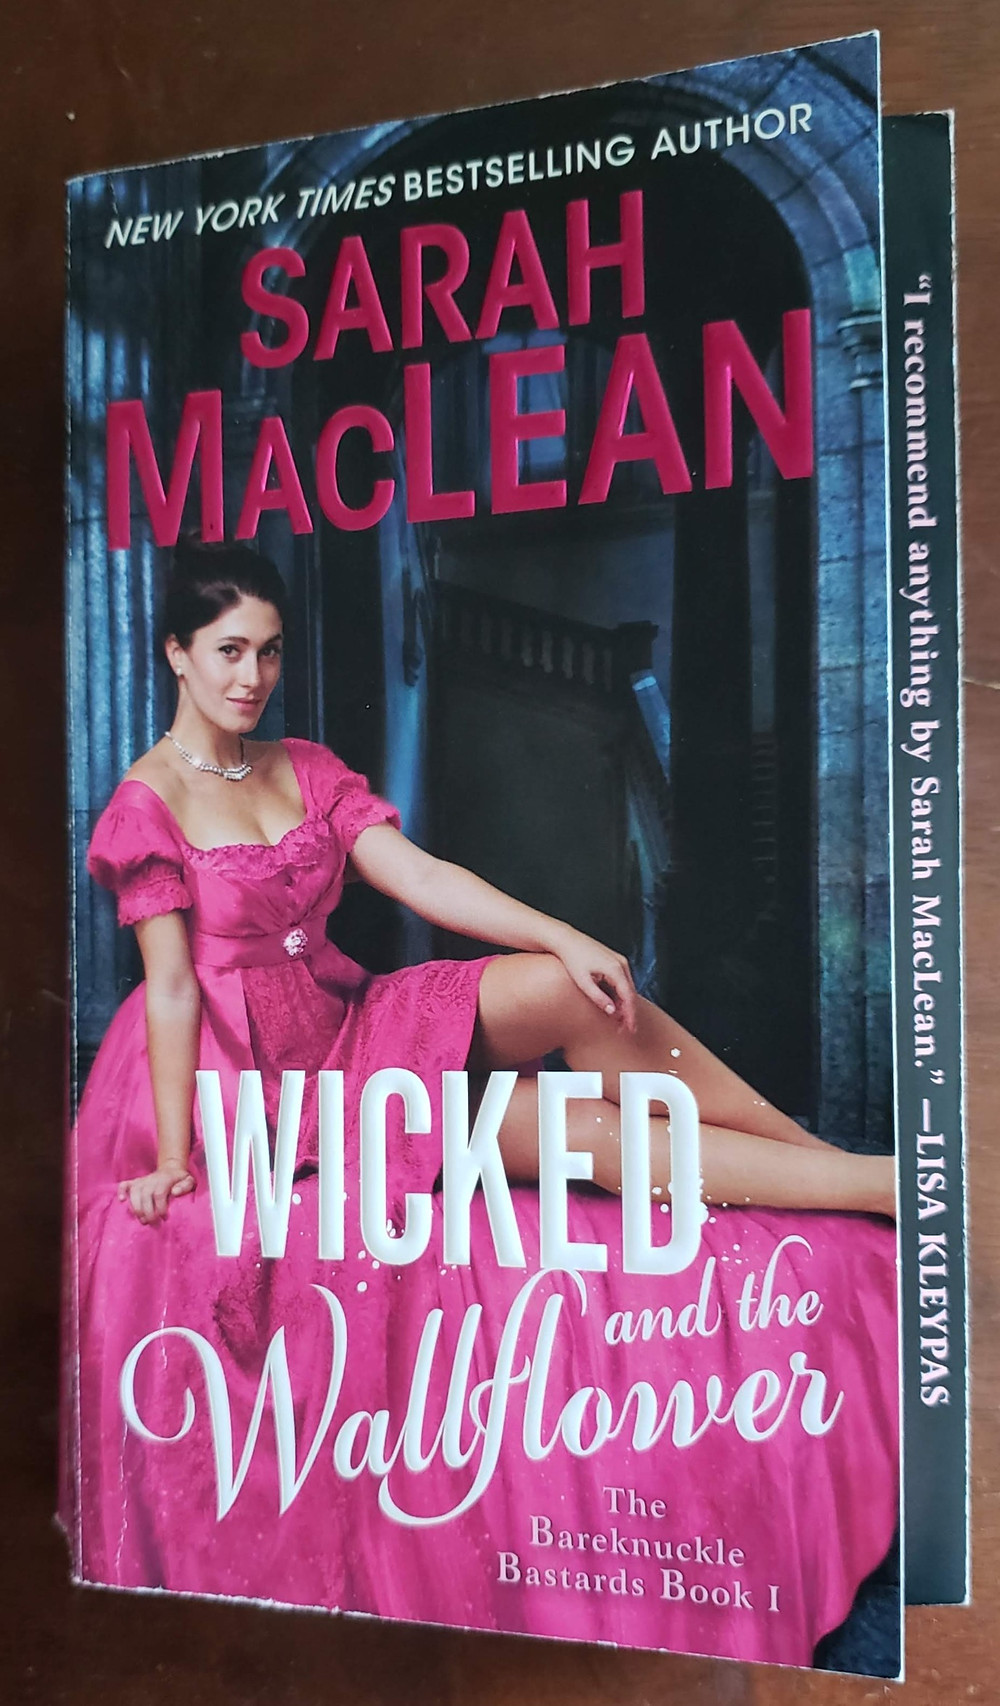 The front facing cover of the book Wicked and the Wallflower by Sarah MacLean.